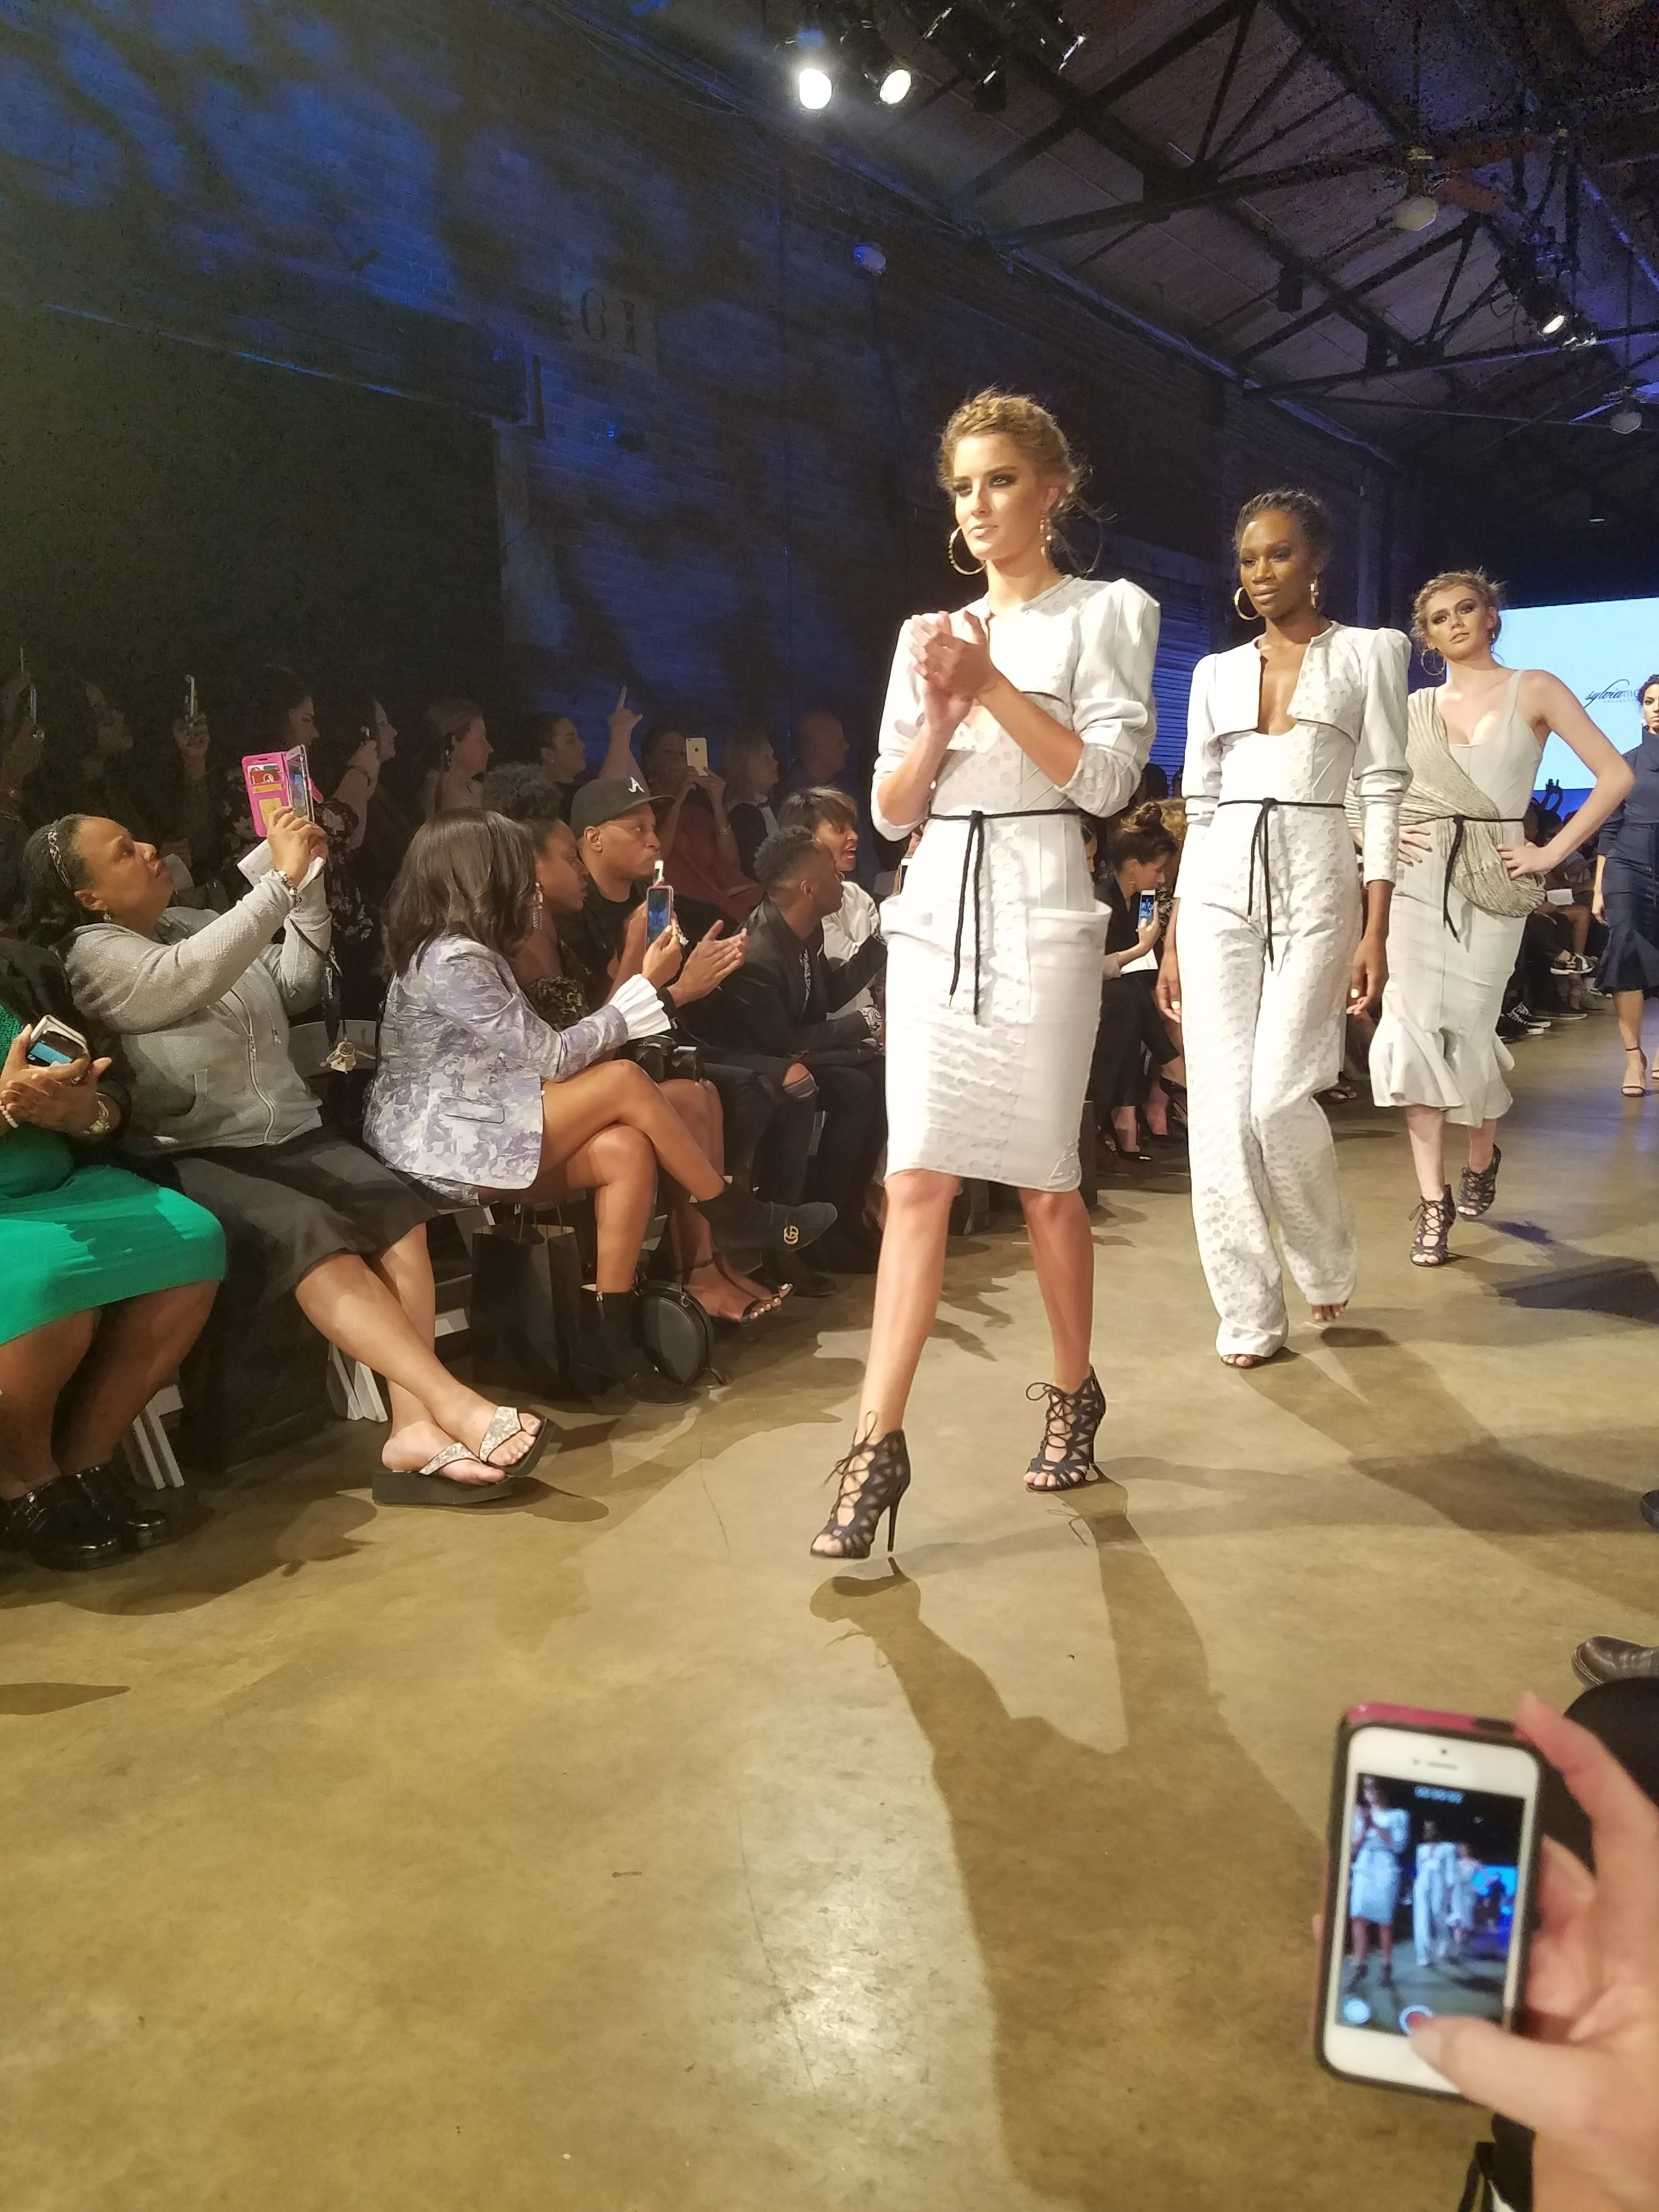 Snapshot from the Sylvia Mollie Show! I just loved all the sculpted shapes! Great Job!